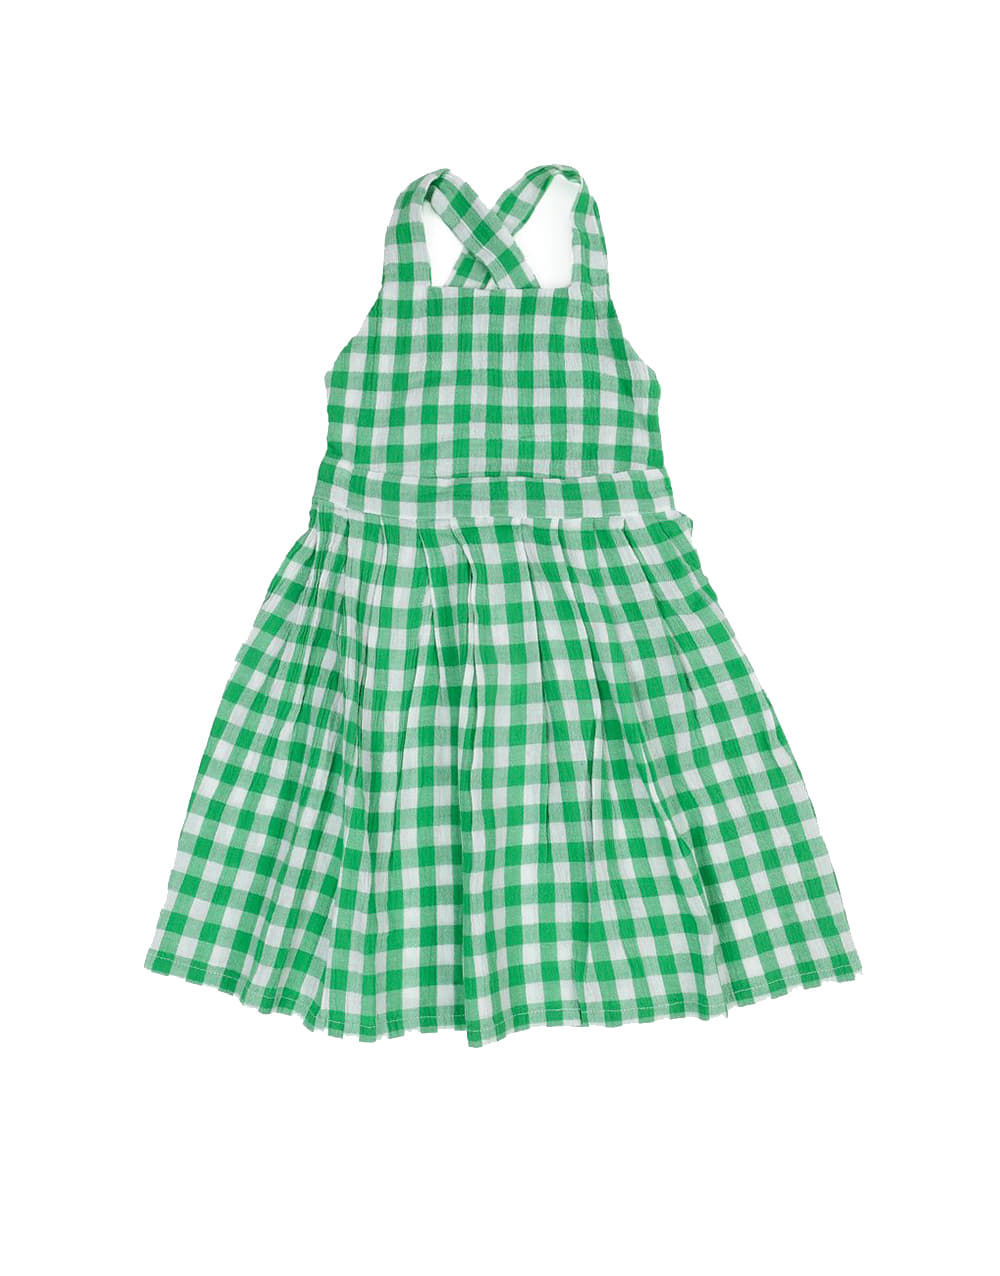 LILY BALOU  Frances Dress    Vichy